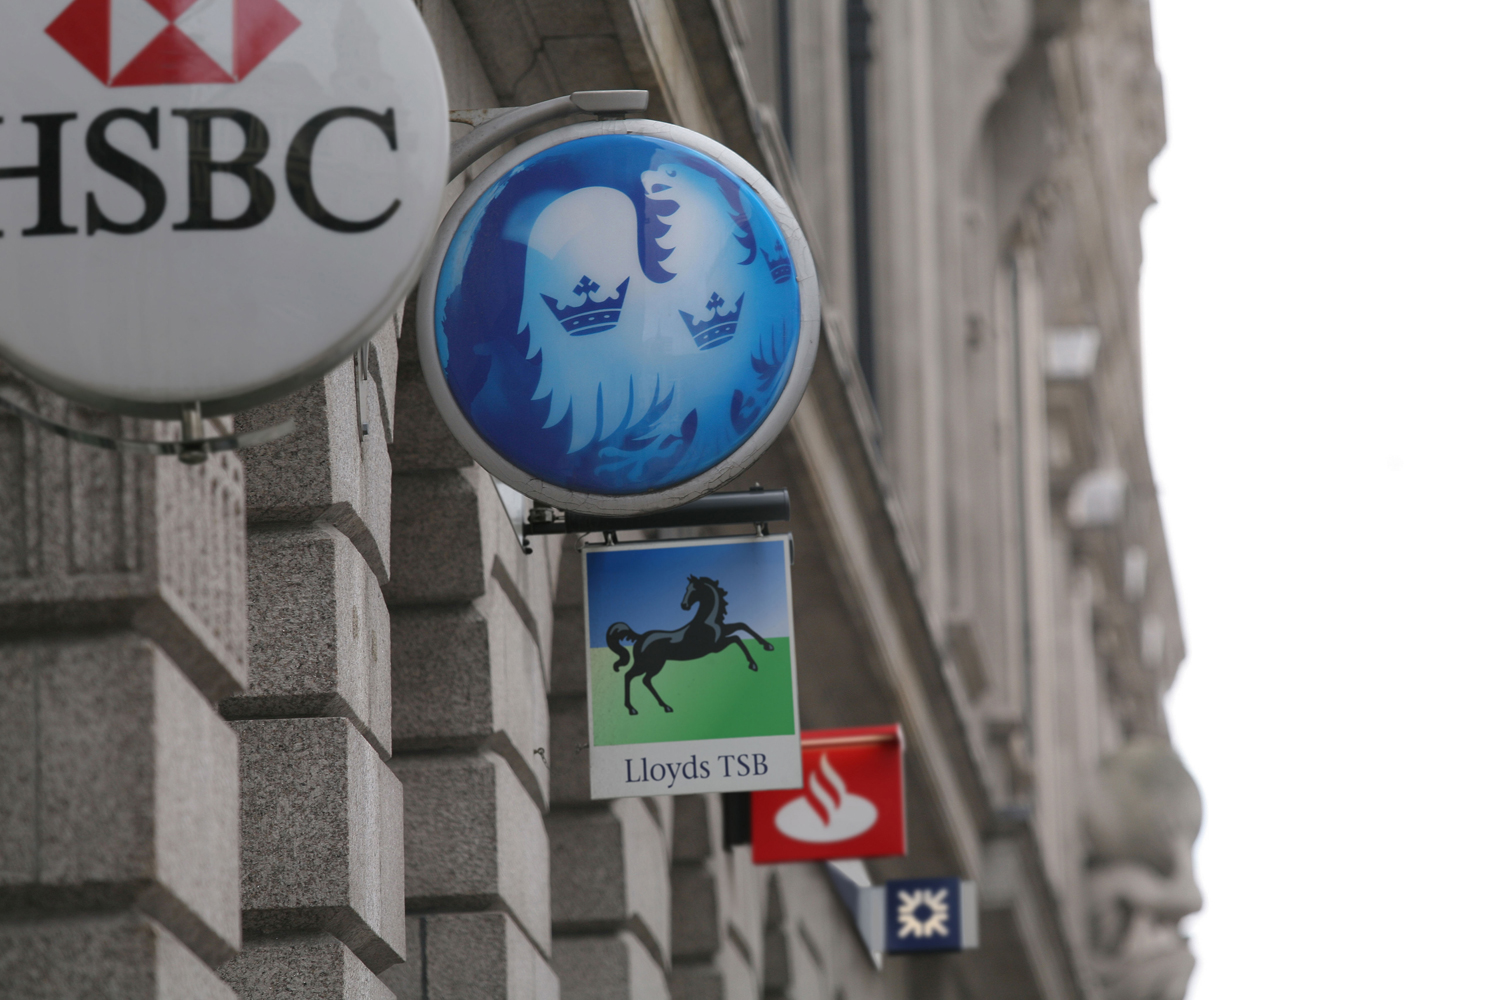 High street banks signs